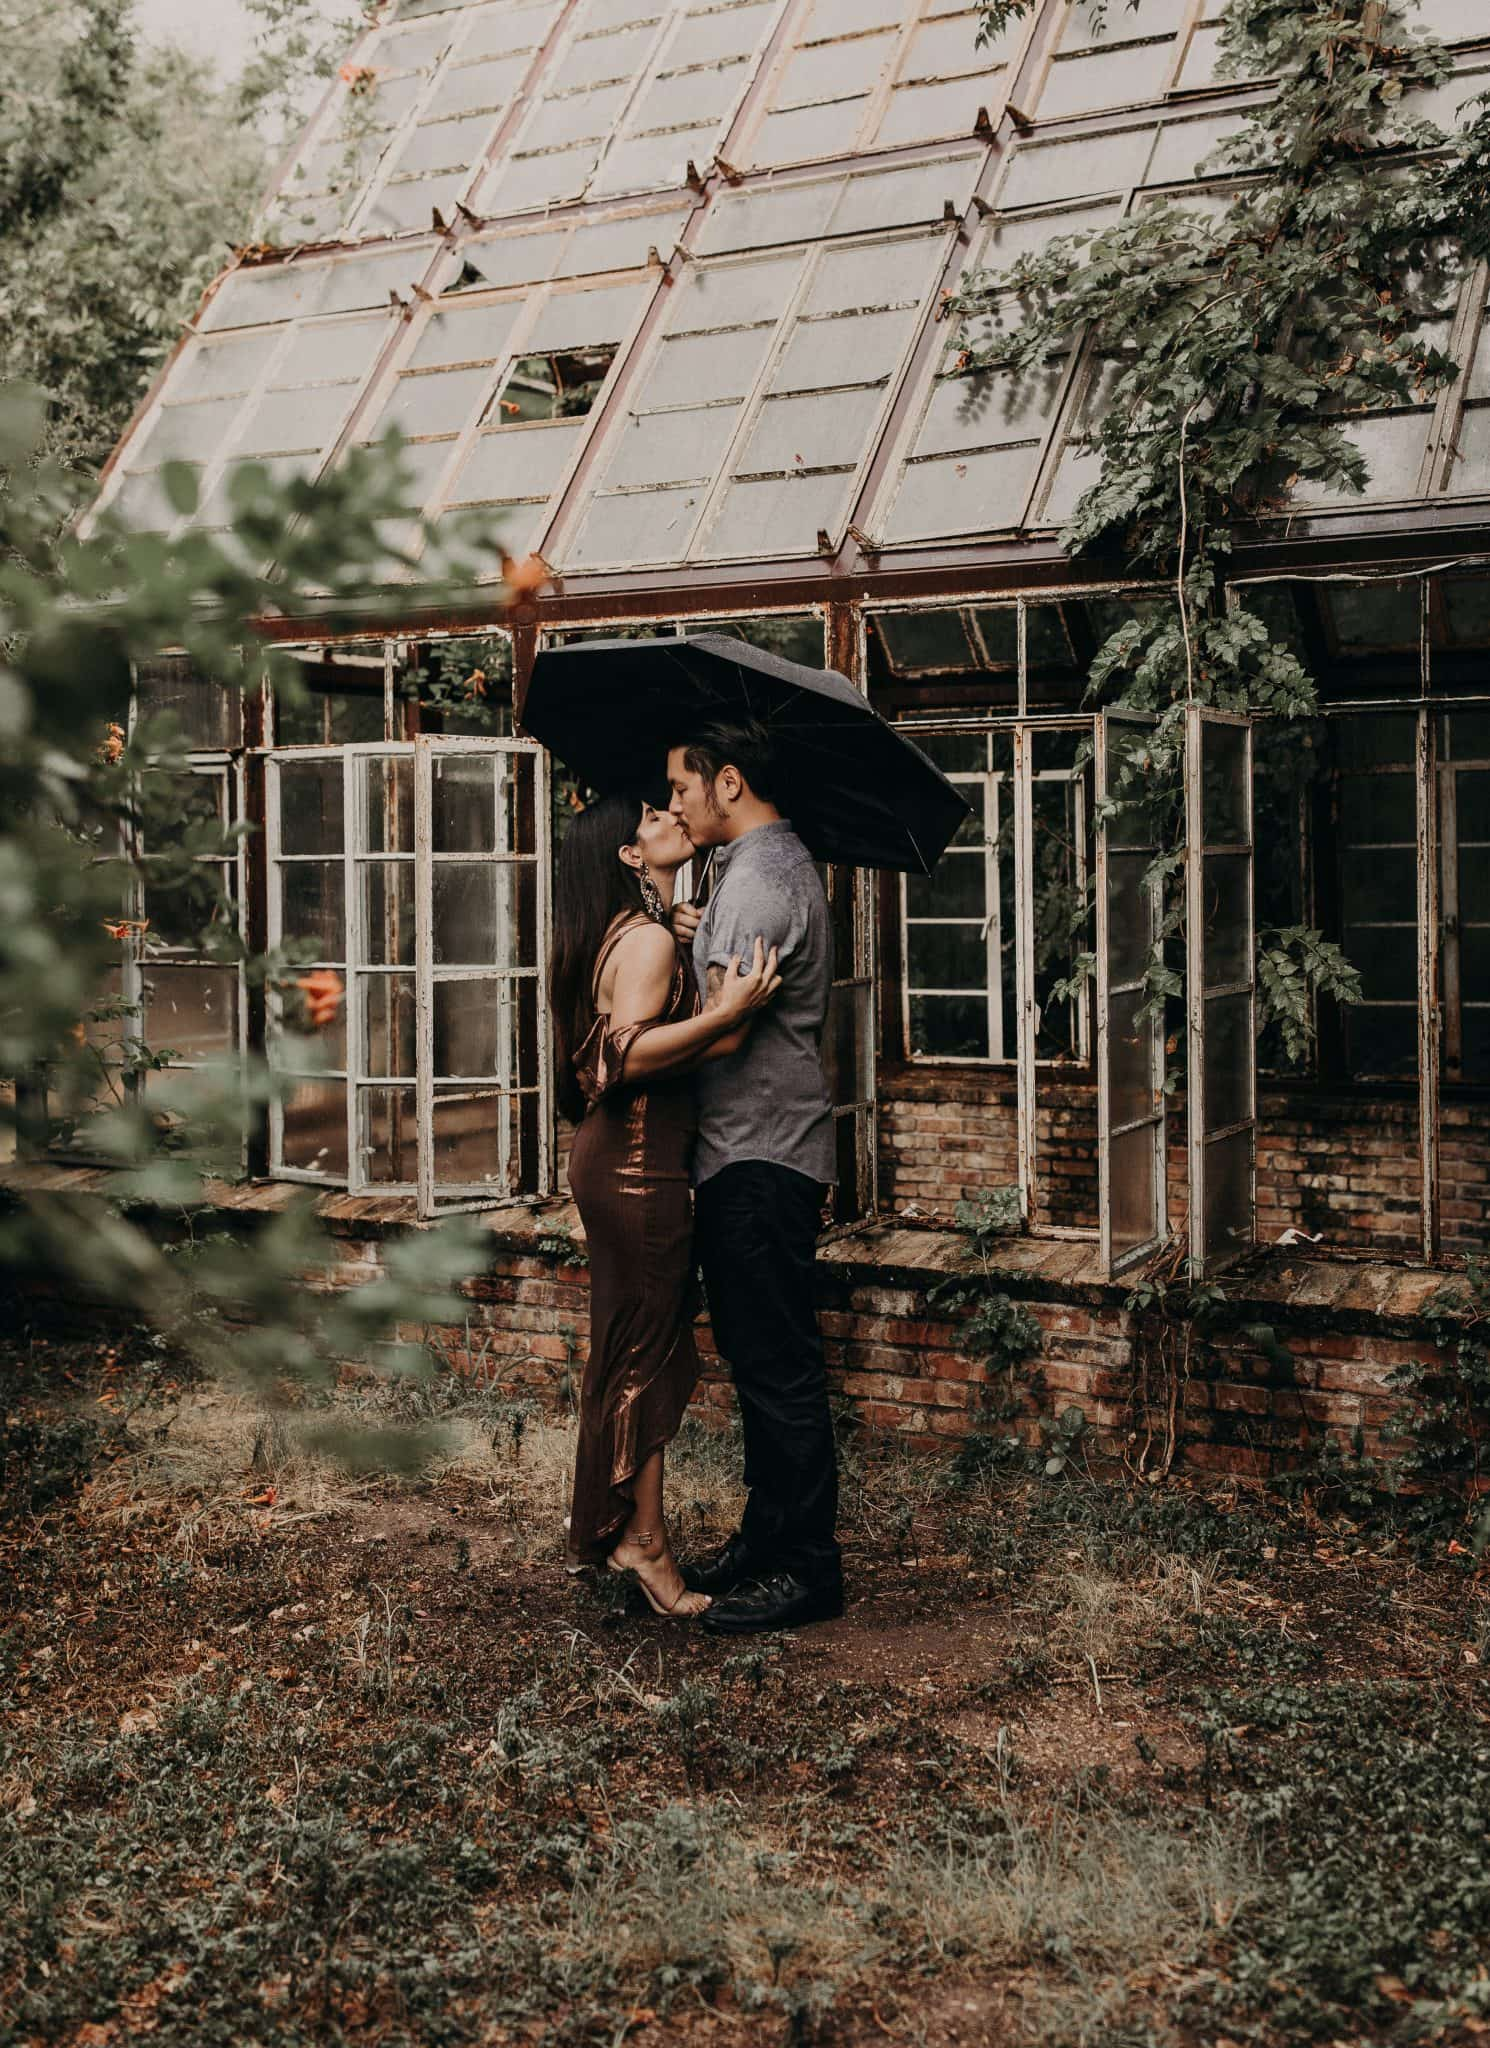 Bride to be and groom to be standing in front of an old brick and rustic greenhouse with it's windows open while holding an umbrella and kissing at Sekrit Theater in Austin, Texas. Photograph by Austin, Texas wedding photographer Nikk Nguyen.